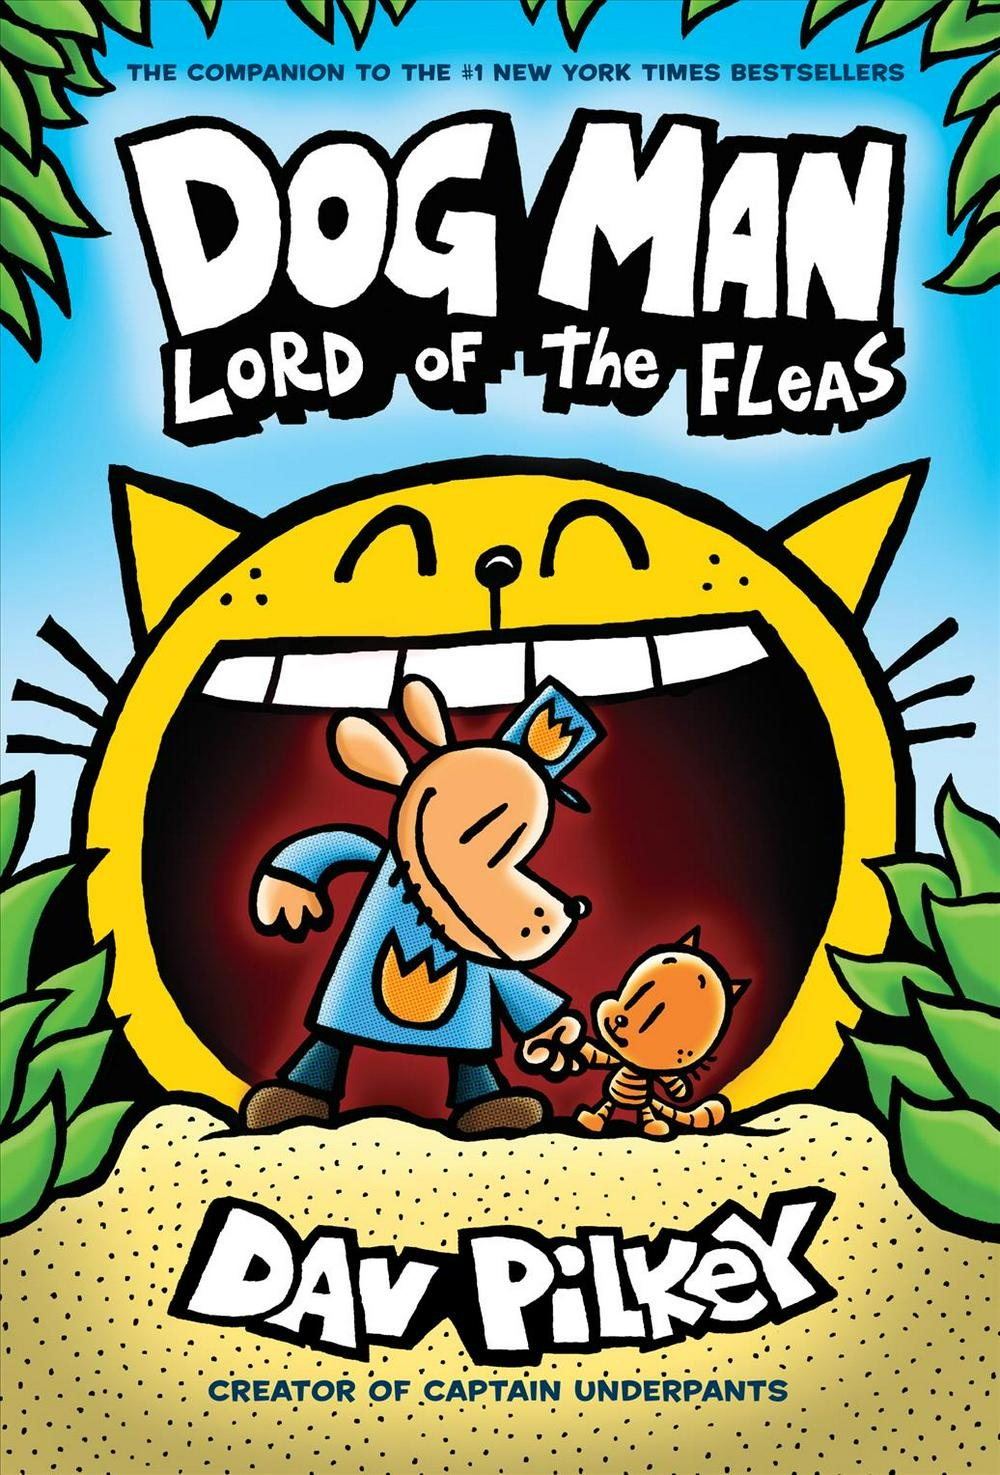 Dog Man: Lord of the Fleas: From the Creator of Captain Underpants (Dog Man #5) by Dav Pilkey, ISBN: 9781338290912